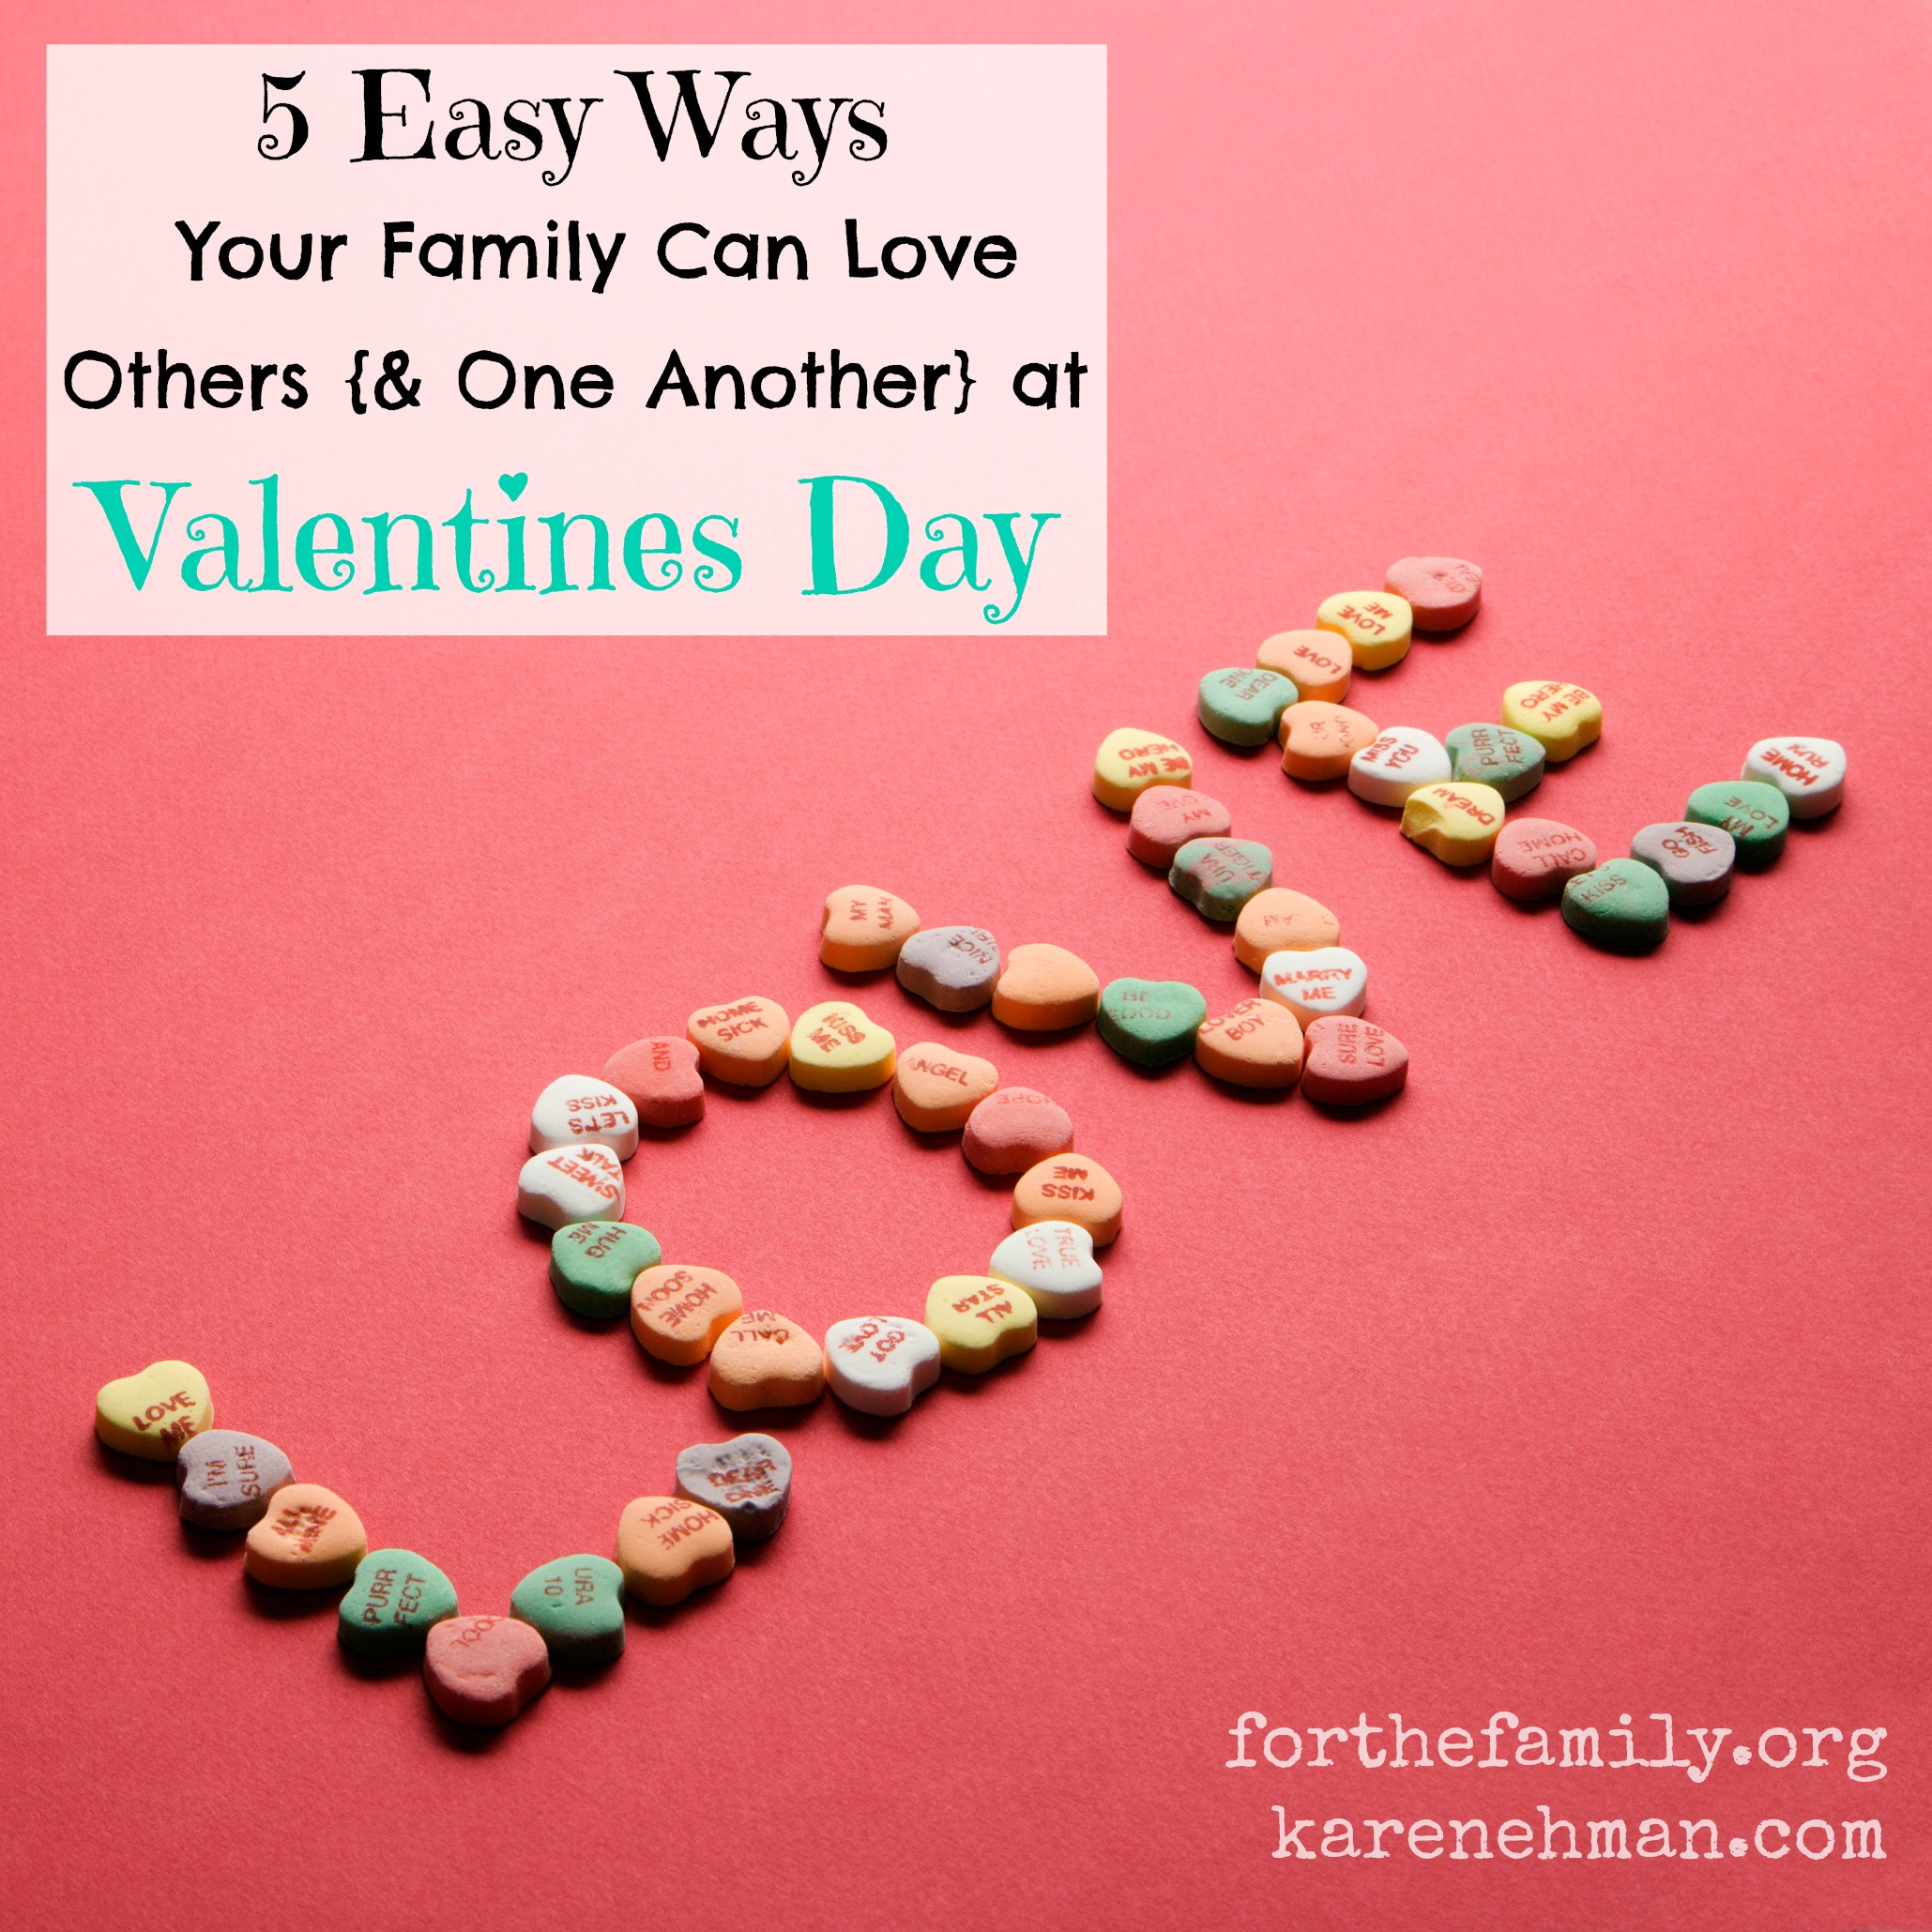 5 Easy Ways Your Family Can Love Others {& One Another} at Valentines Day